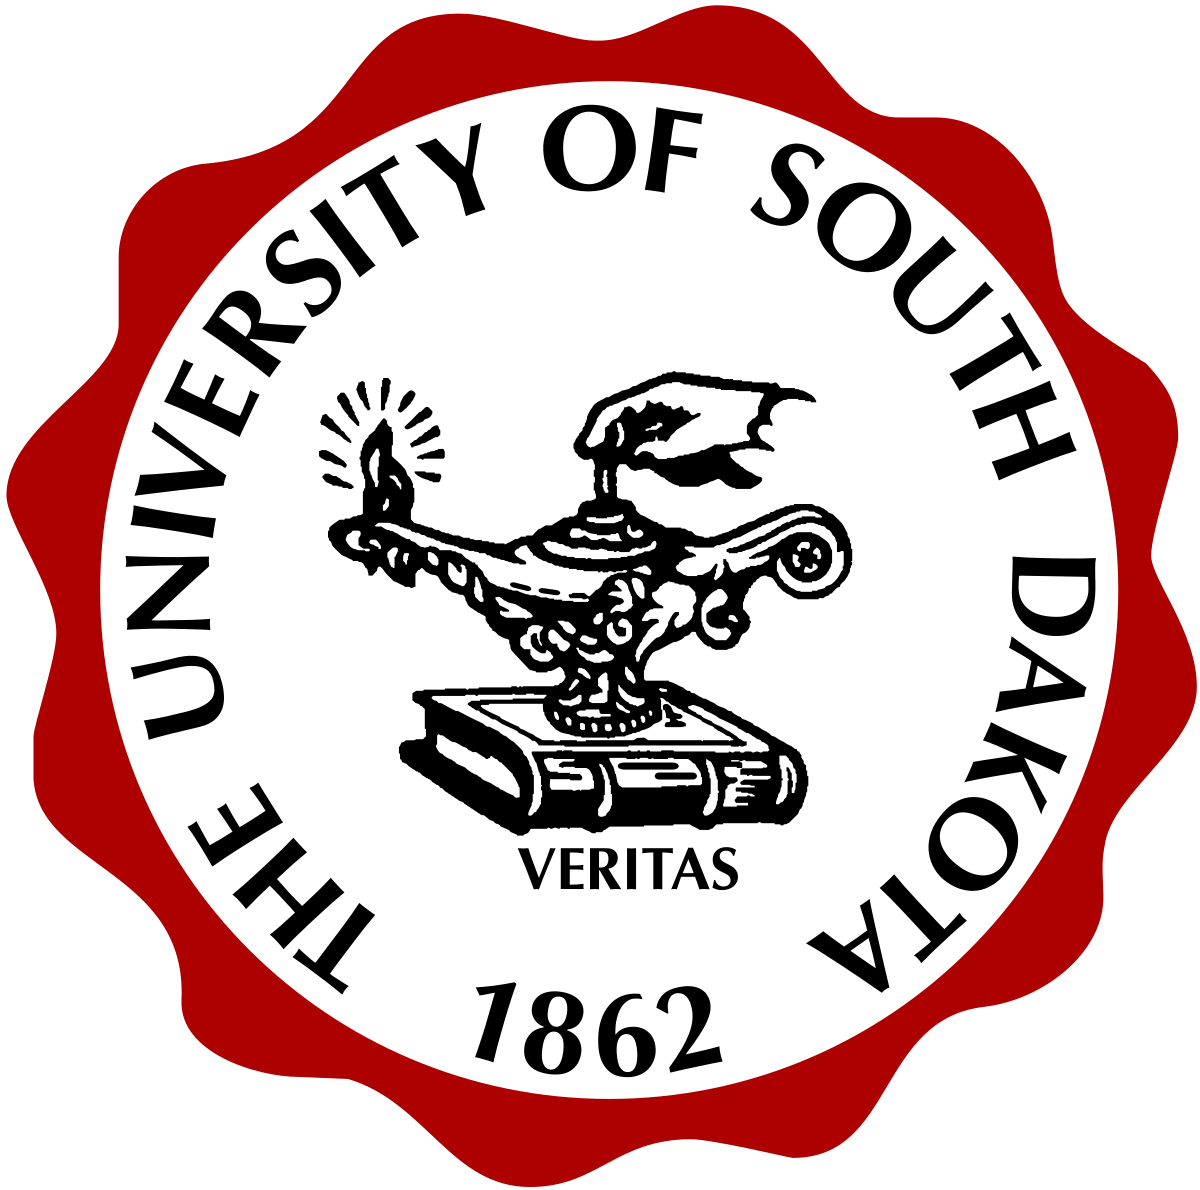 University Of South Dakota - Wikipedia For University O South Dakota School Schedule